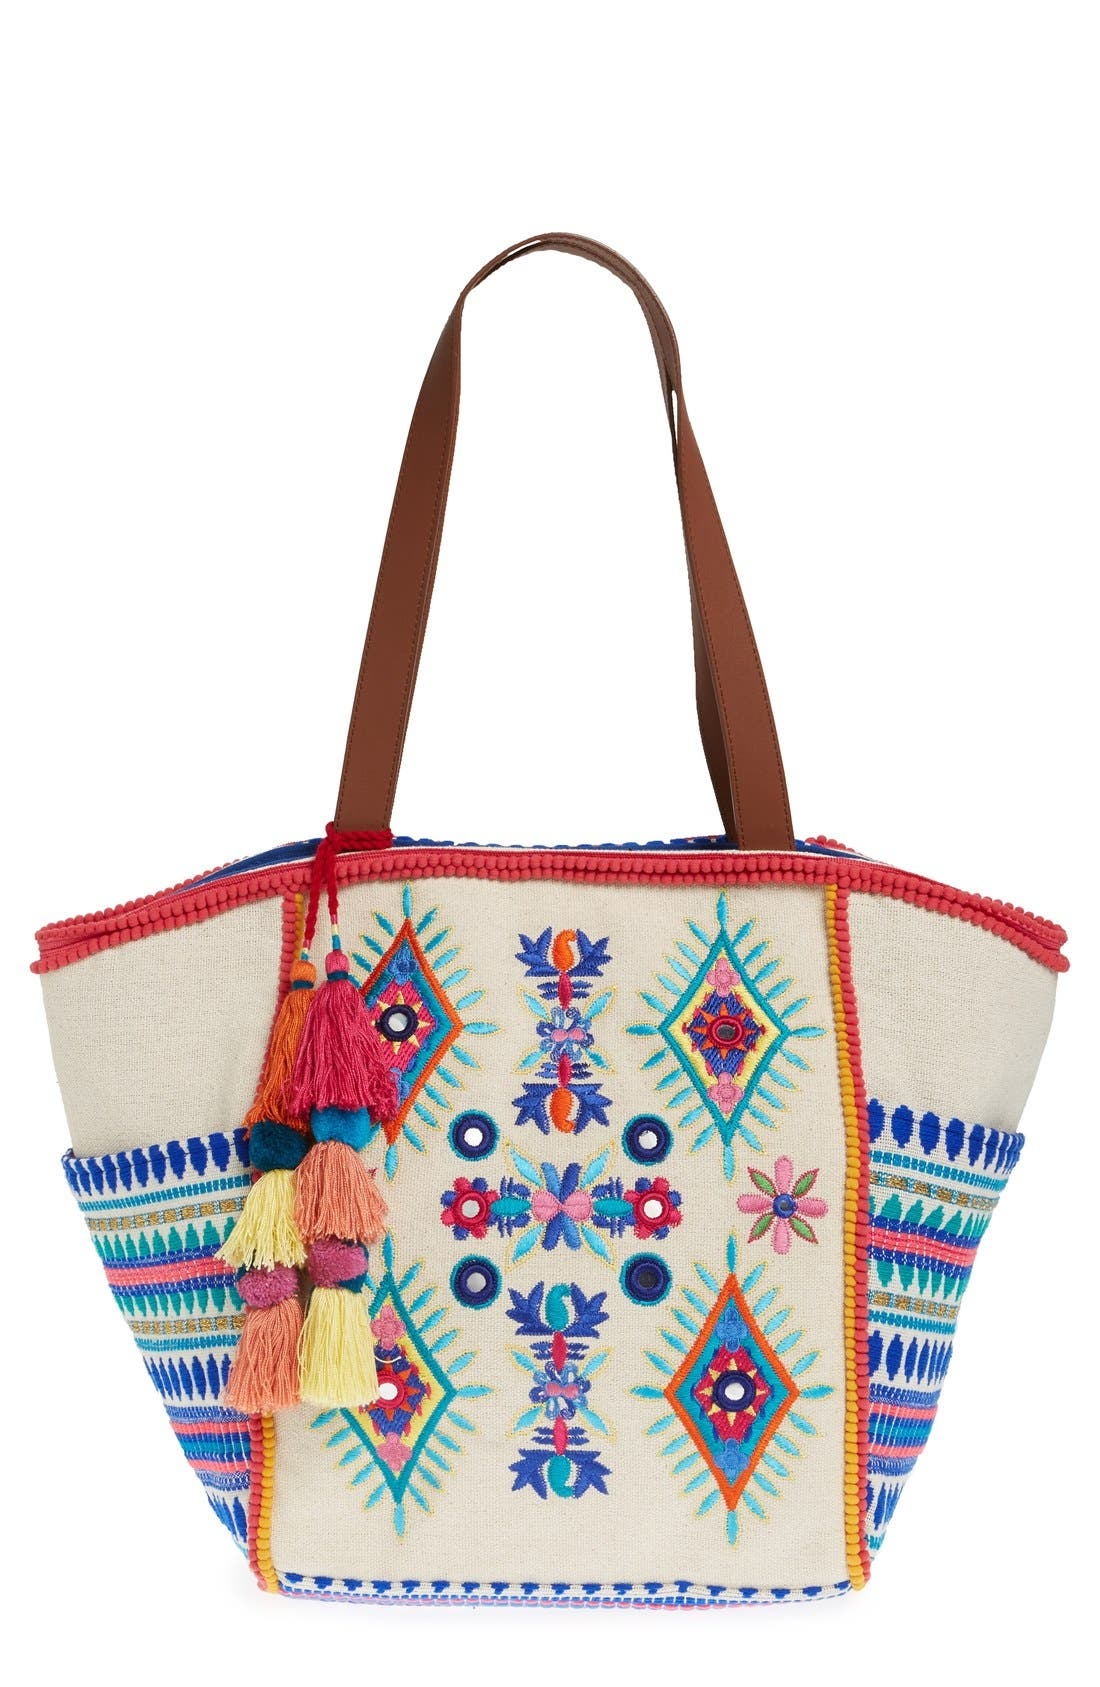 Main Image - Steven by Steve Madden Embroidered Pompom Tote